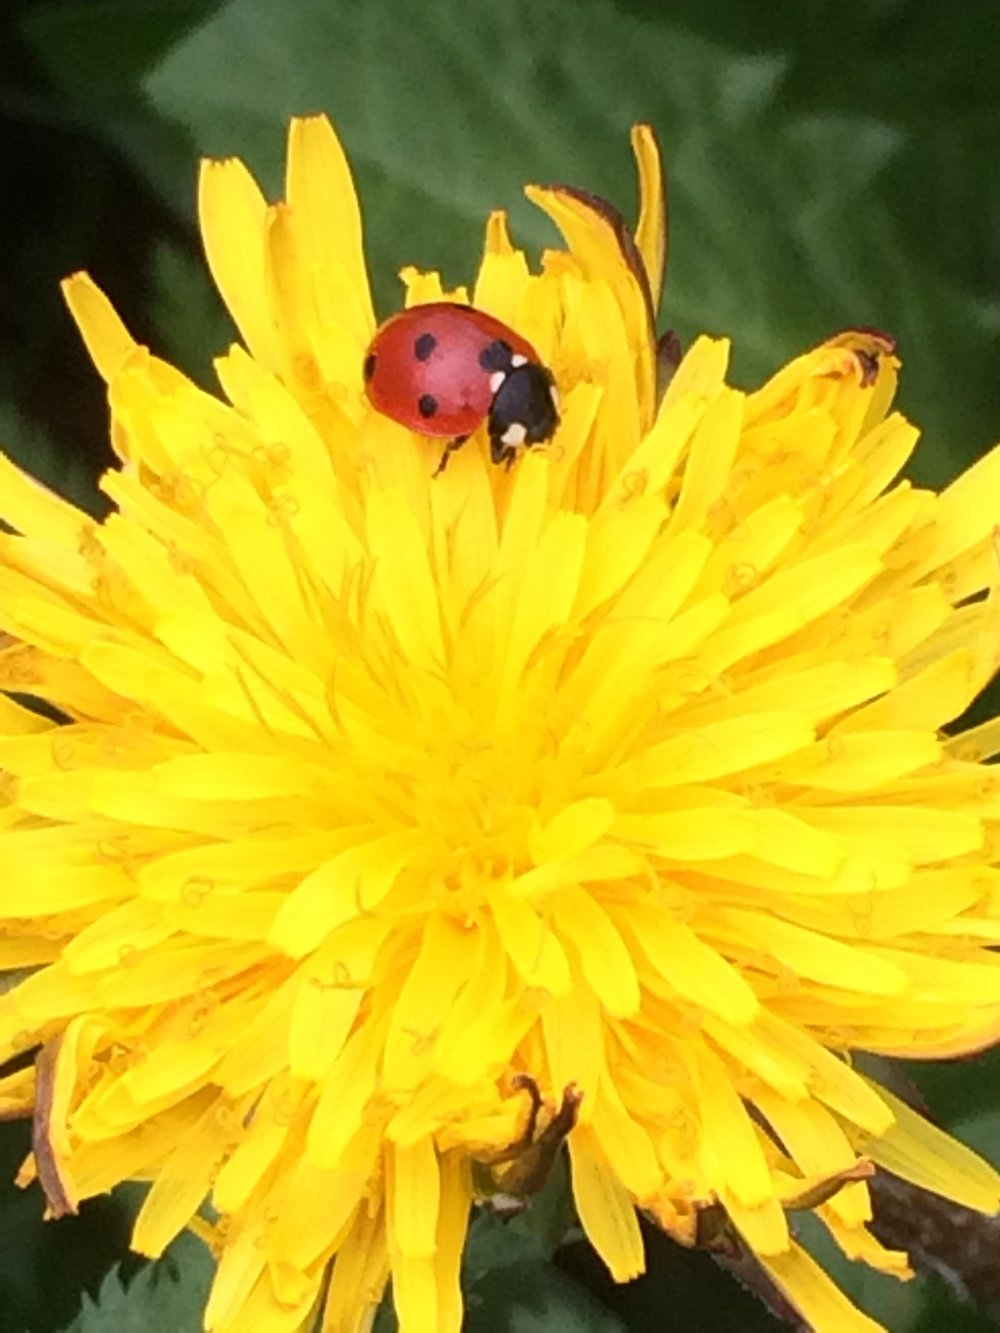 Bees aren't the only beneficial insects to visit dandelions. Ladybird beetle visiting a dandelion. Photo by Rachel Olsson.